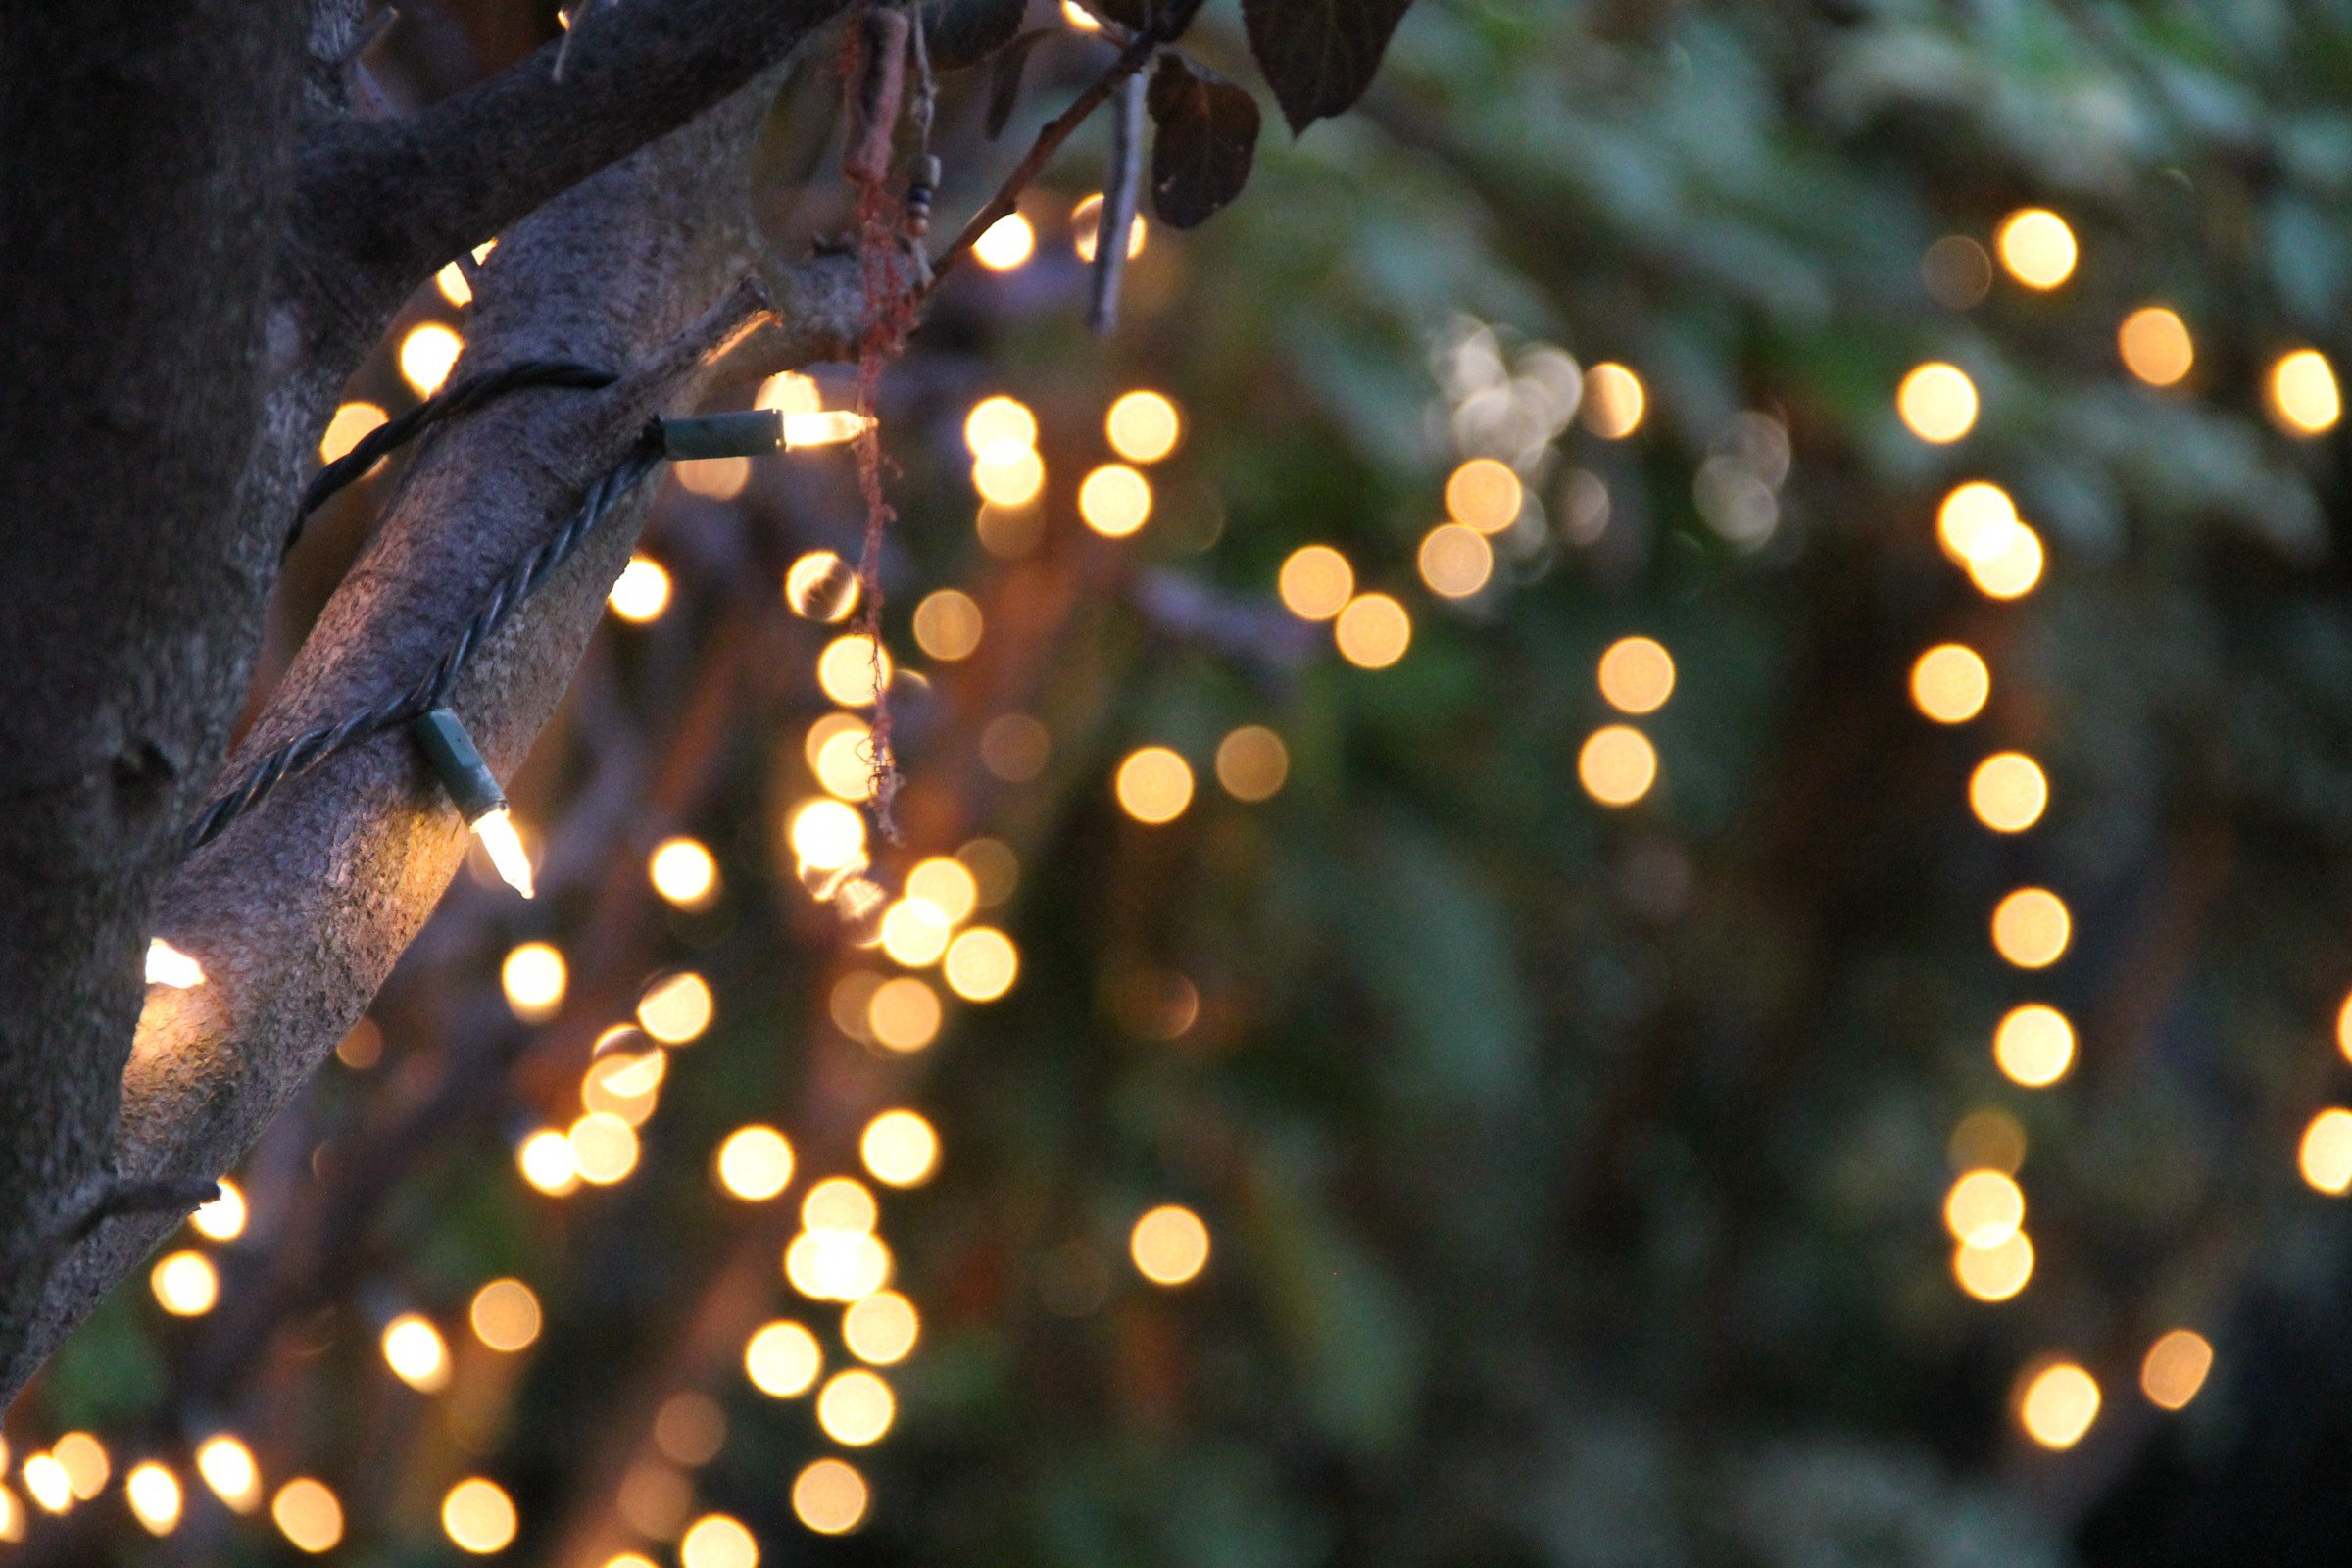 Free Photo of Bokeh of String Lights on Tree GOOD STOCK PHOTOS